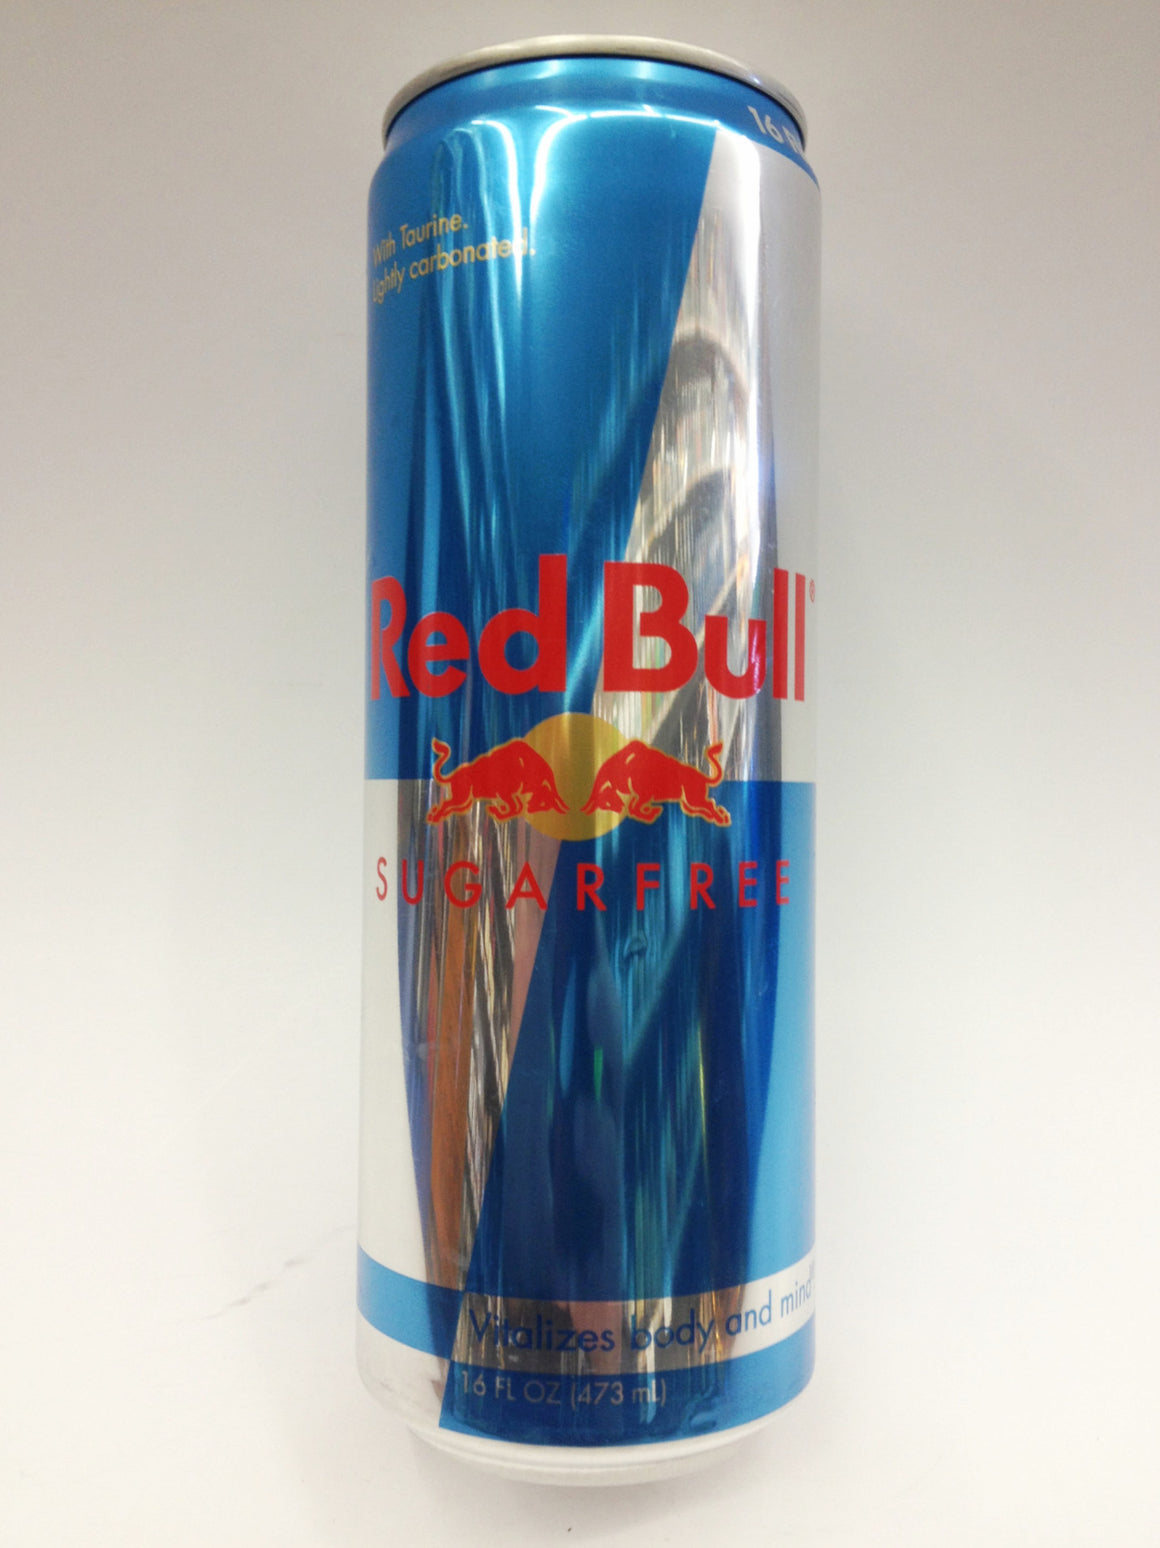 Red Bull Sugarfree Energy Drink 16oz